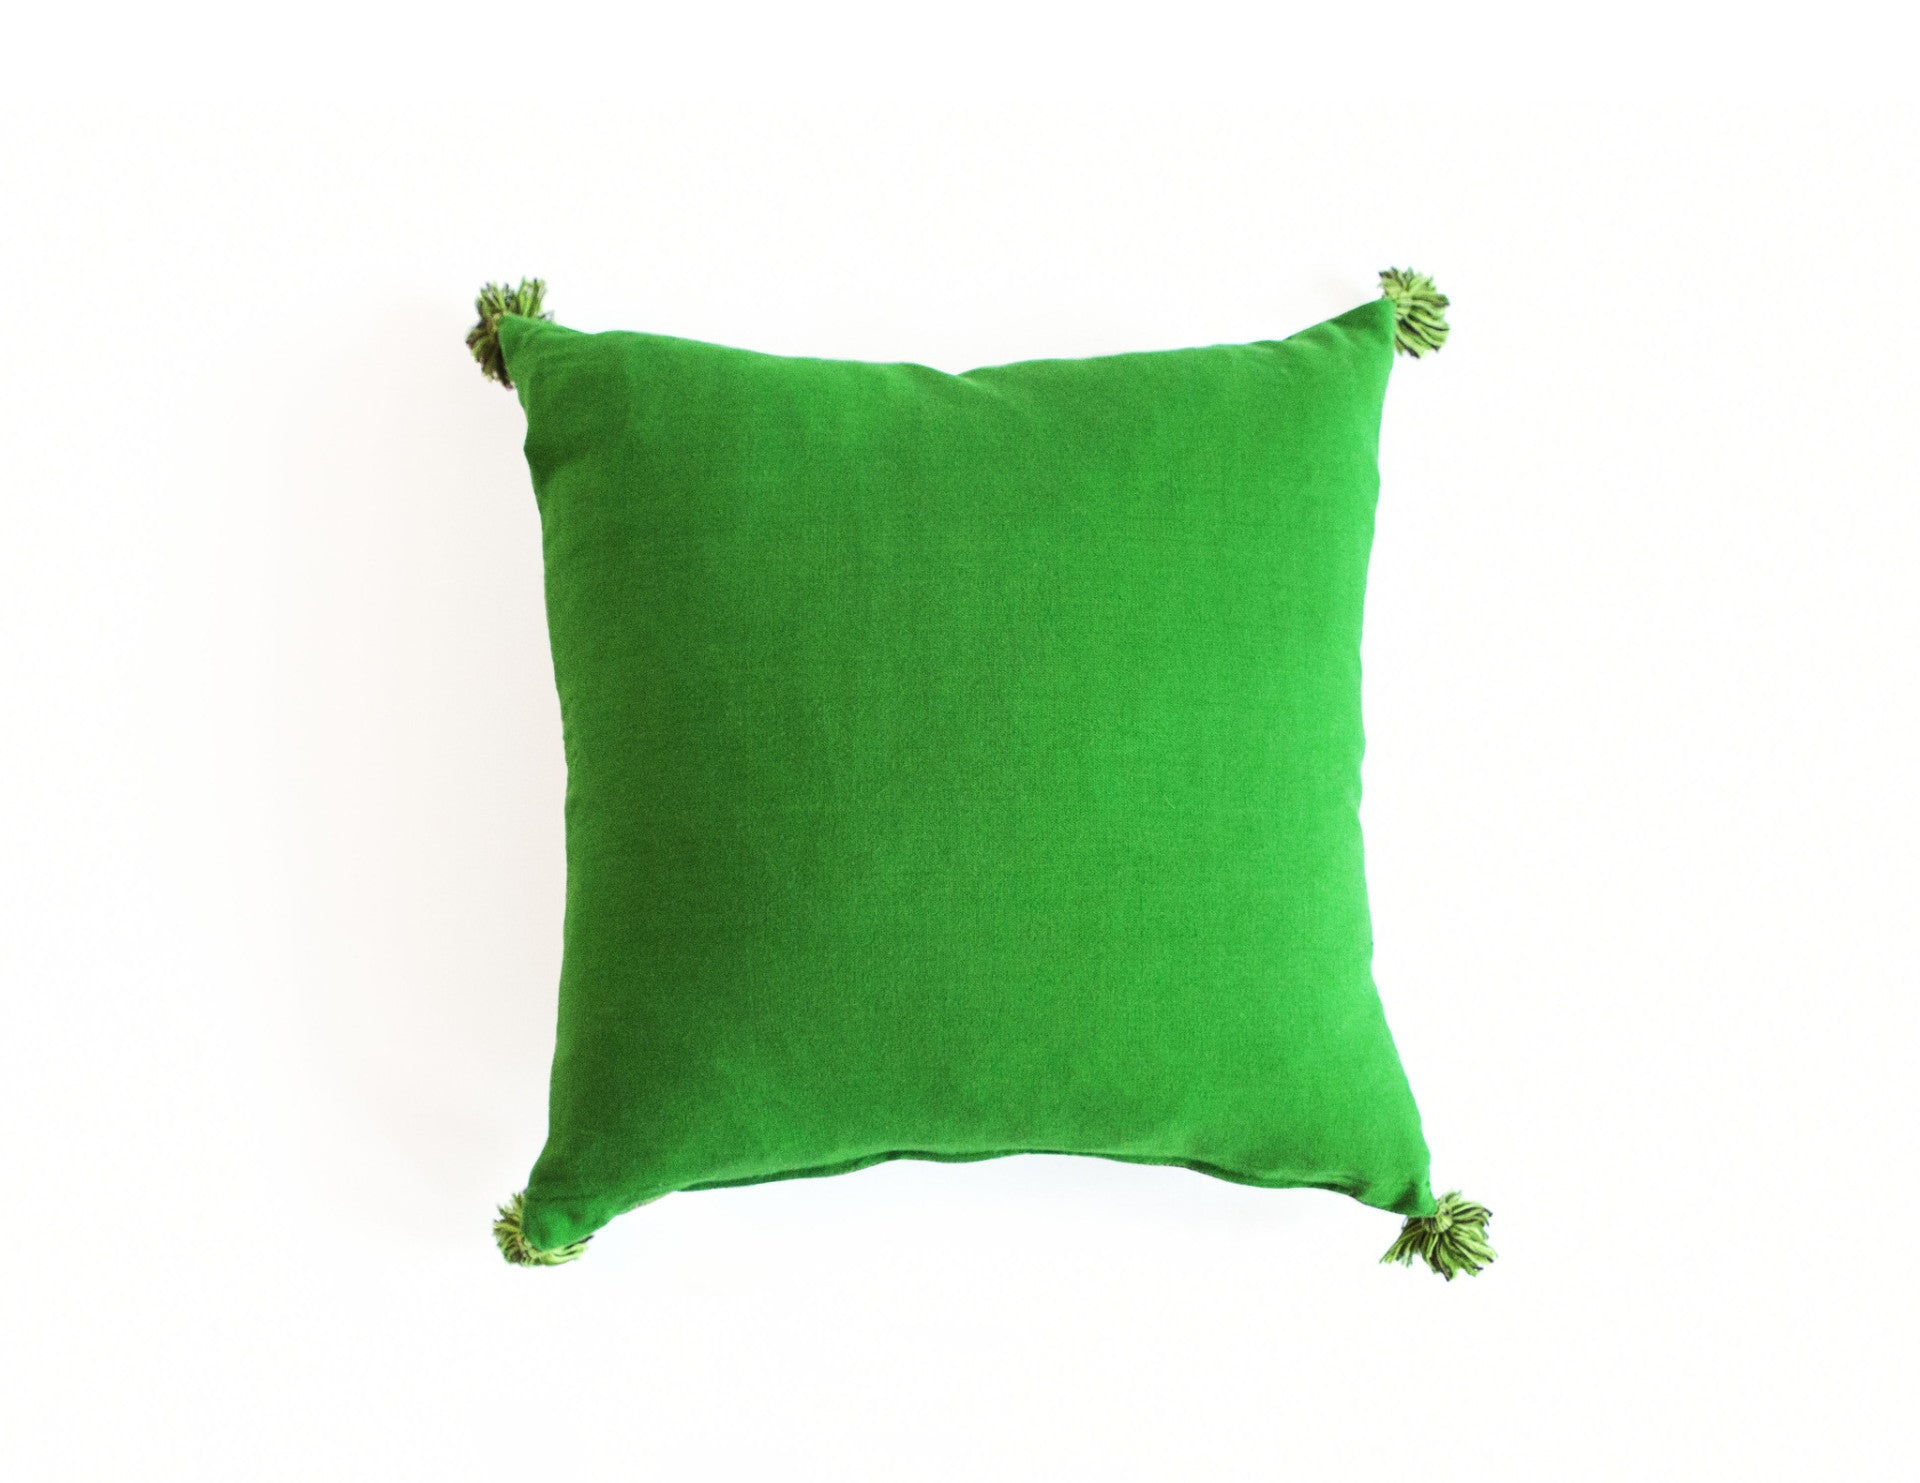 "Handmade Linen Pillow Covers (18""x18"") - Shamrock Green"